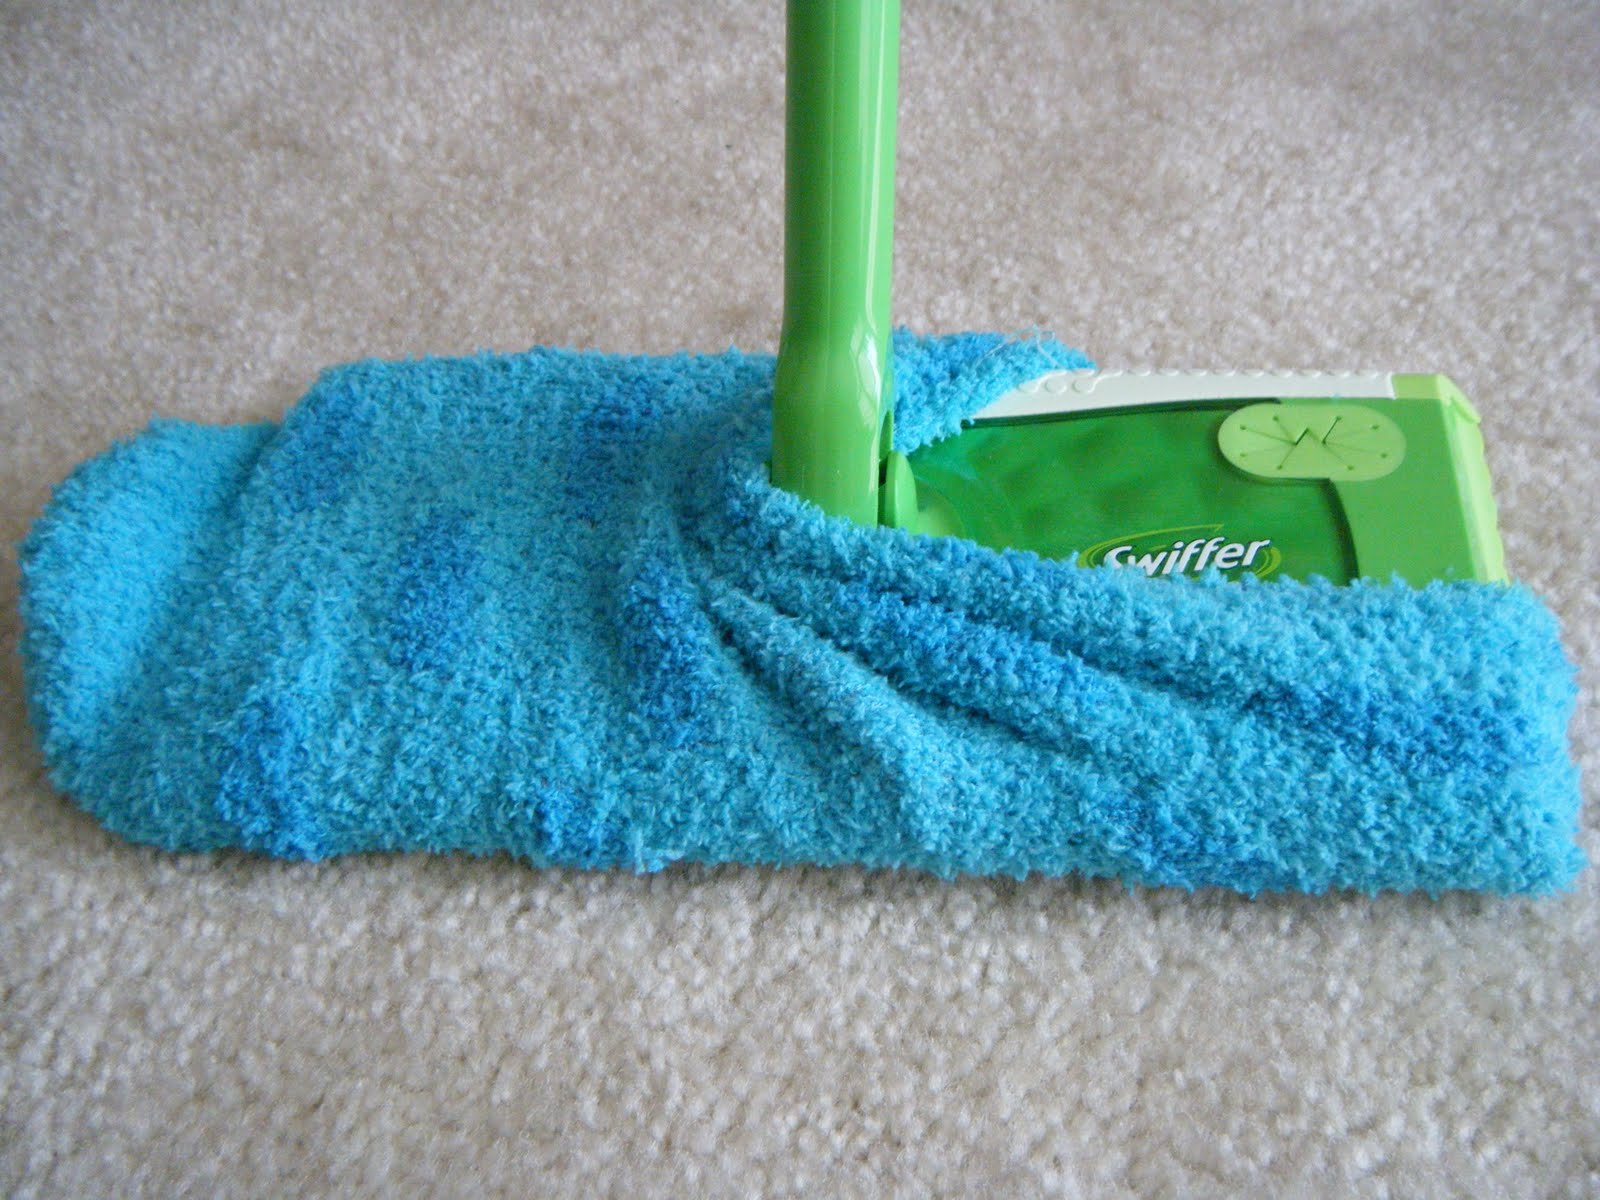 Make your own Swiffer cleaning pad that you can wash and reuse countless times